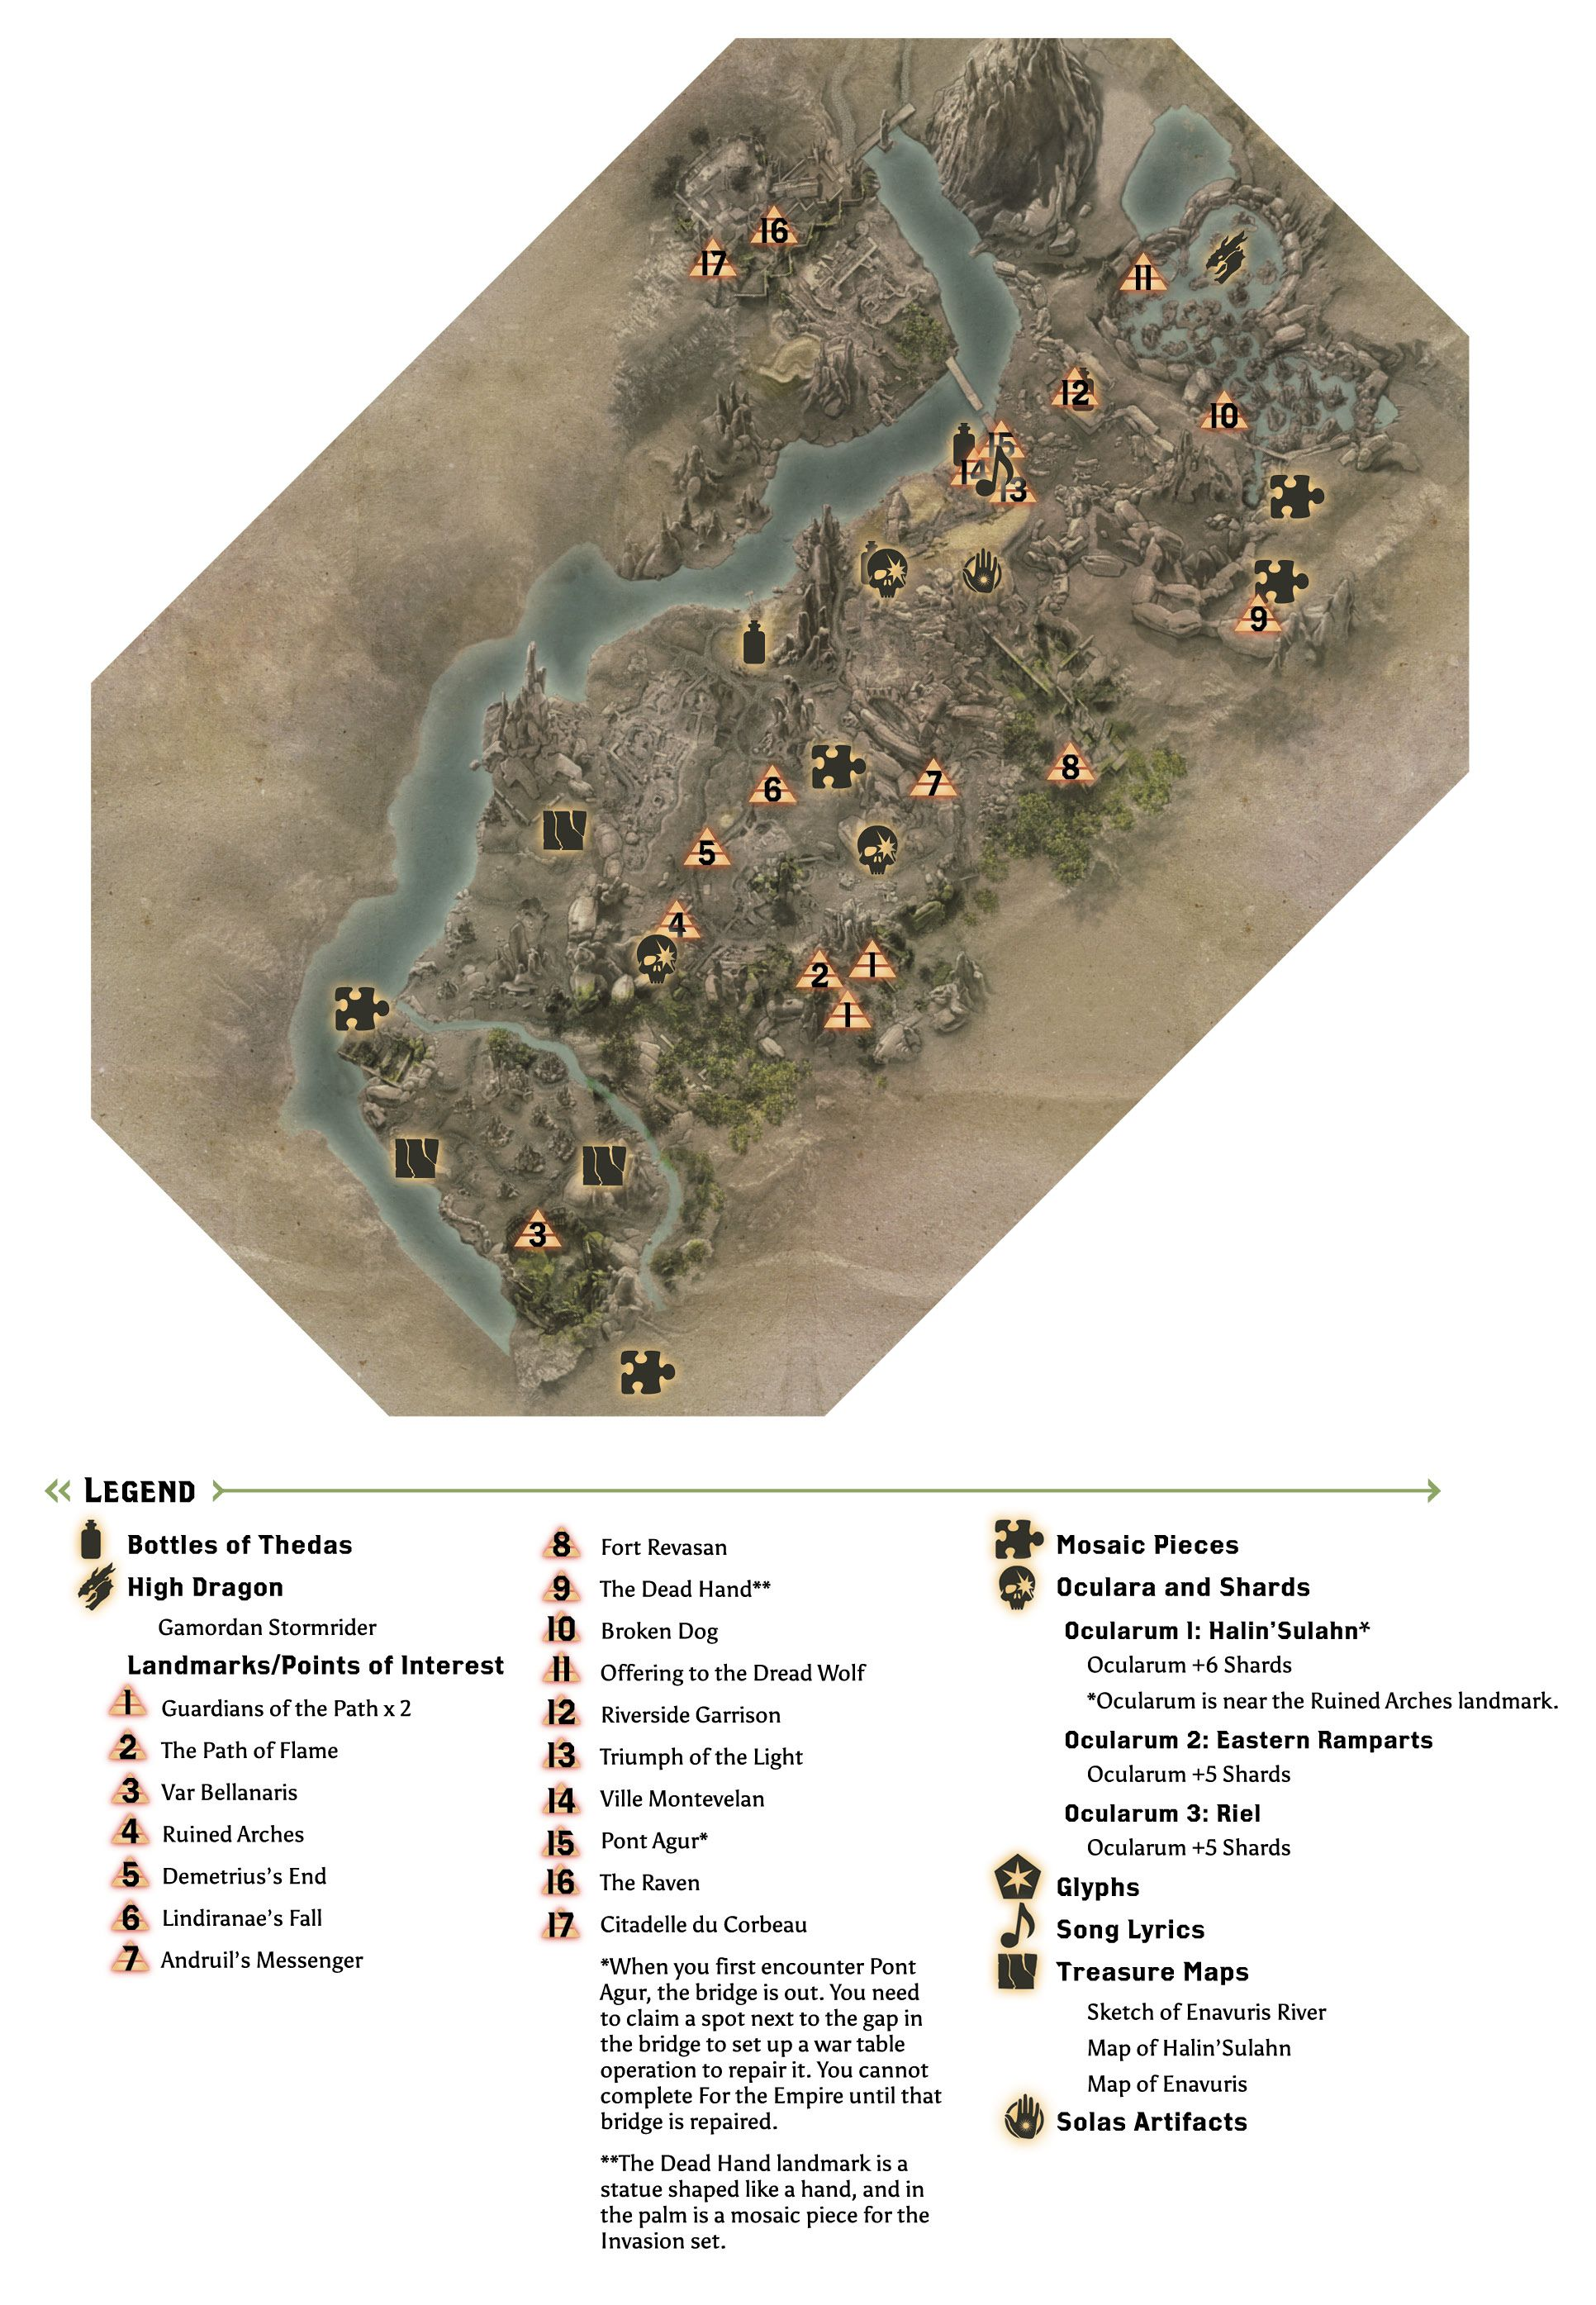 Hinterlands Landmarks : hinterlands, landmarks, Dragon, Inquisition, Hinterlands, World, Atlas